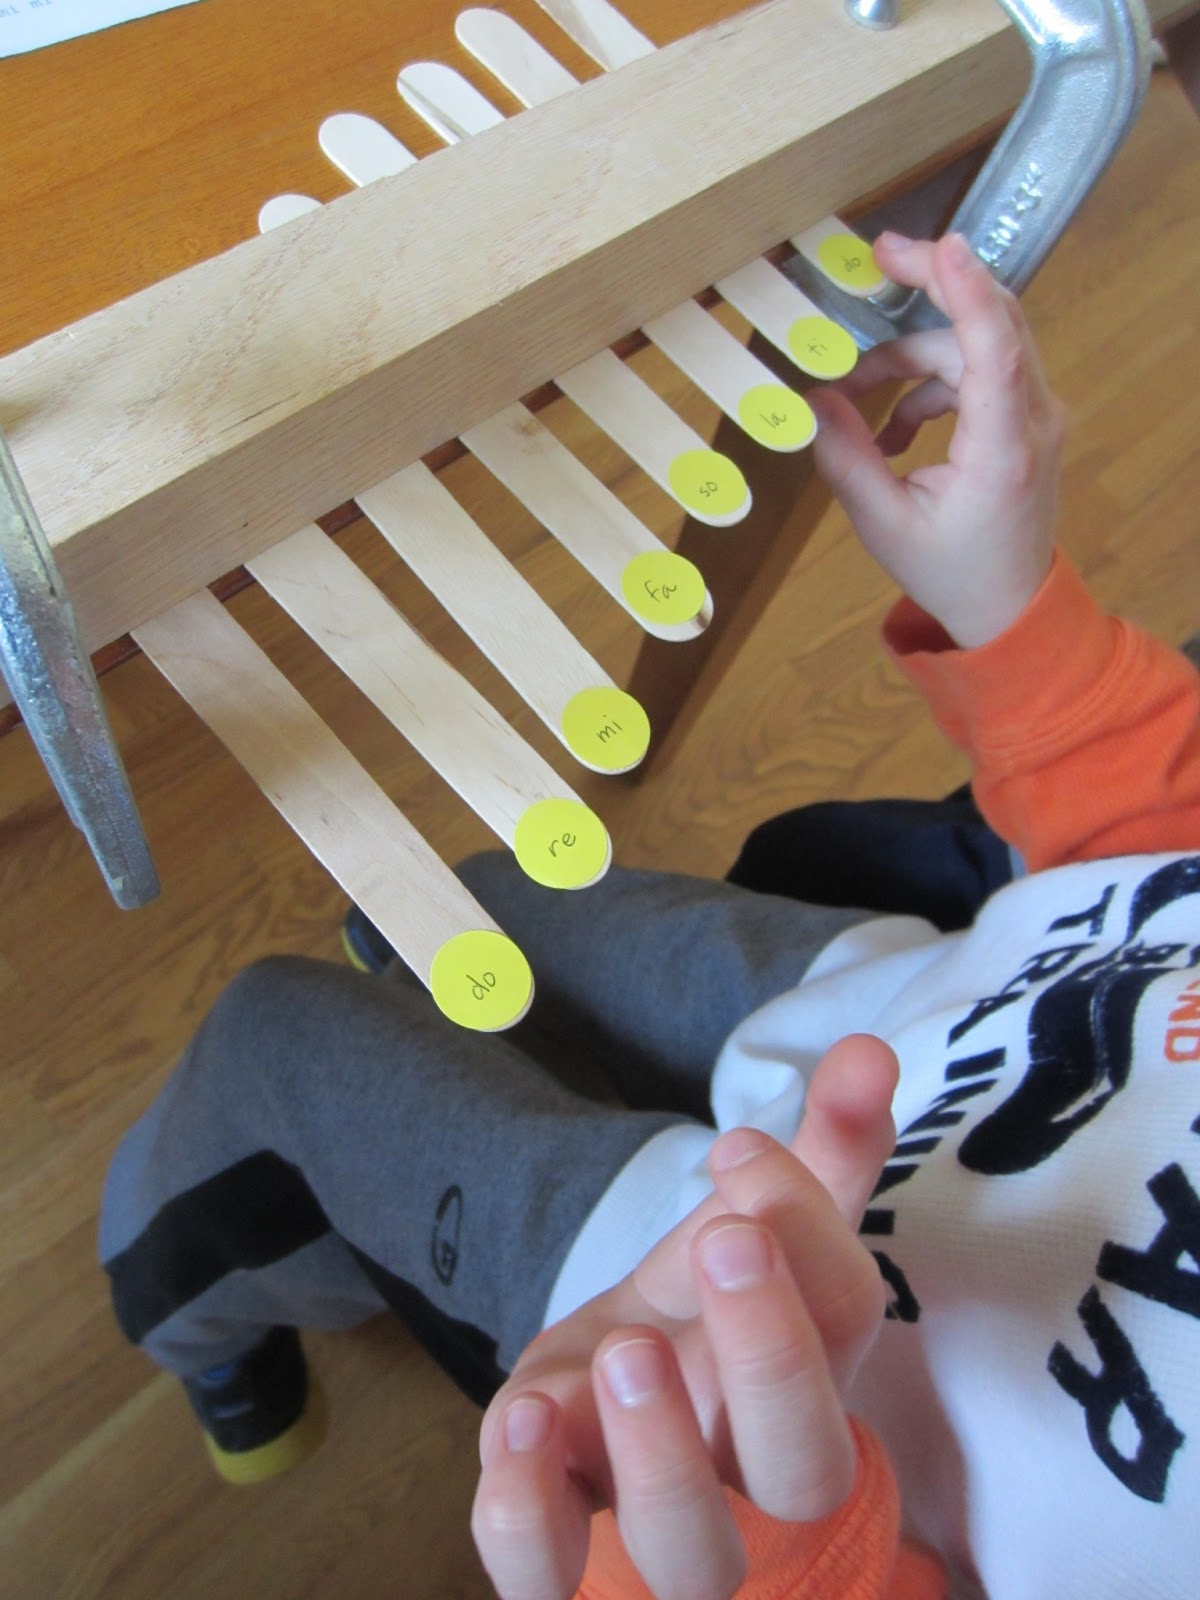 Relentlessly fun deceptively educational diy craft stick piano ccuart Image collections